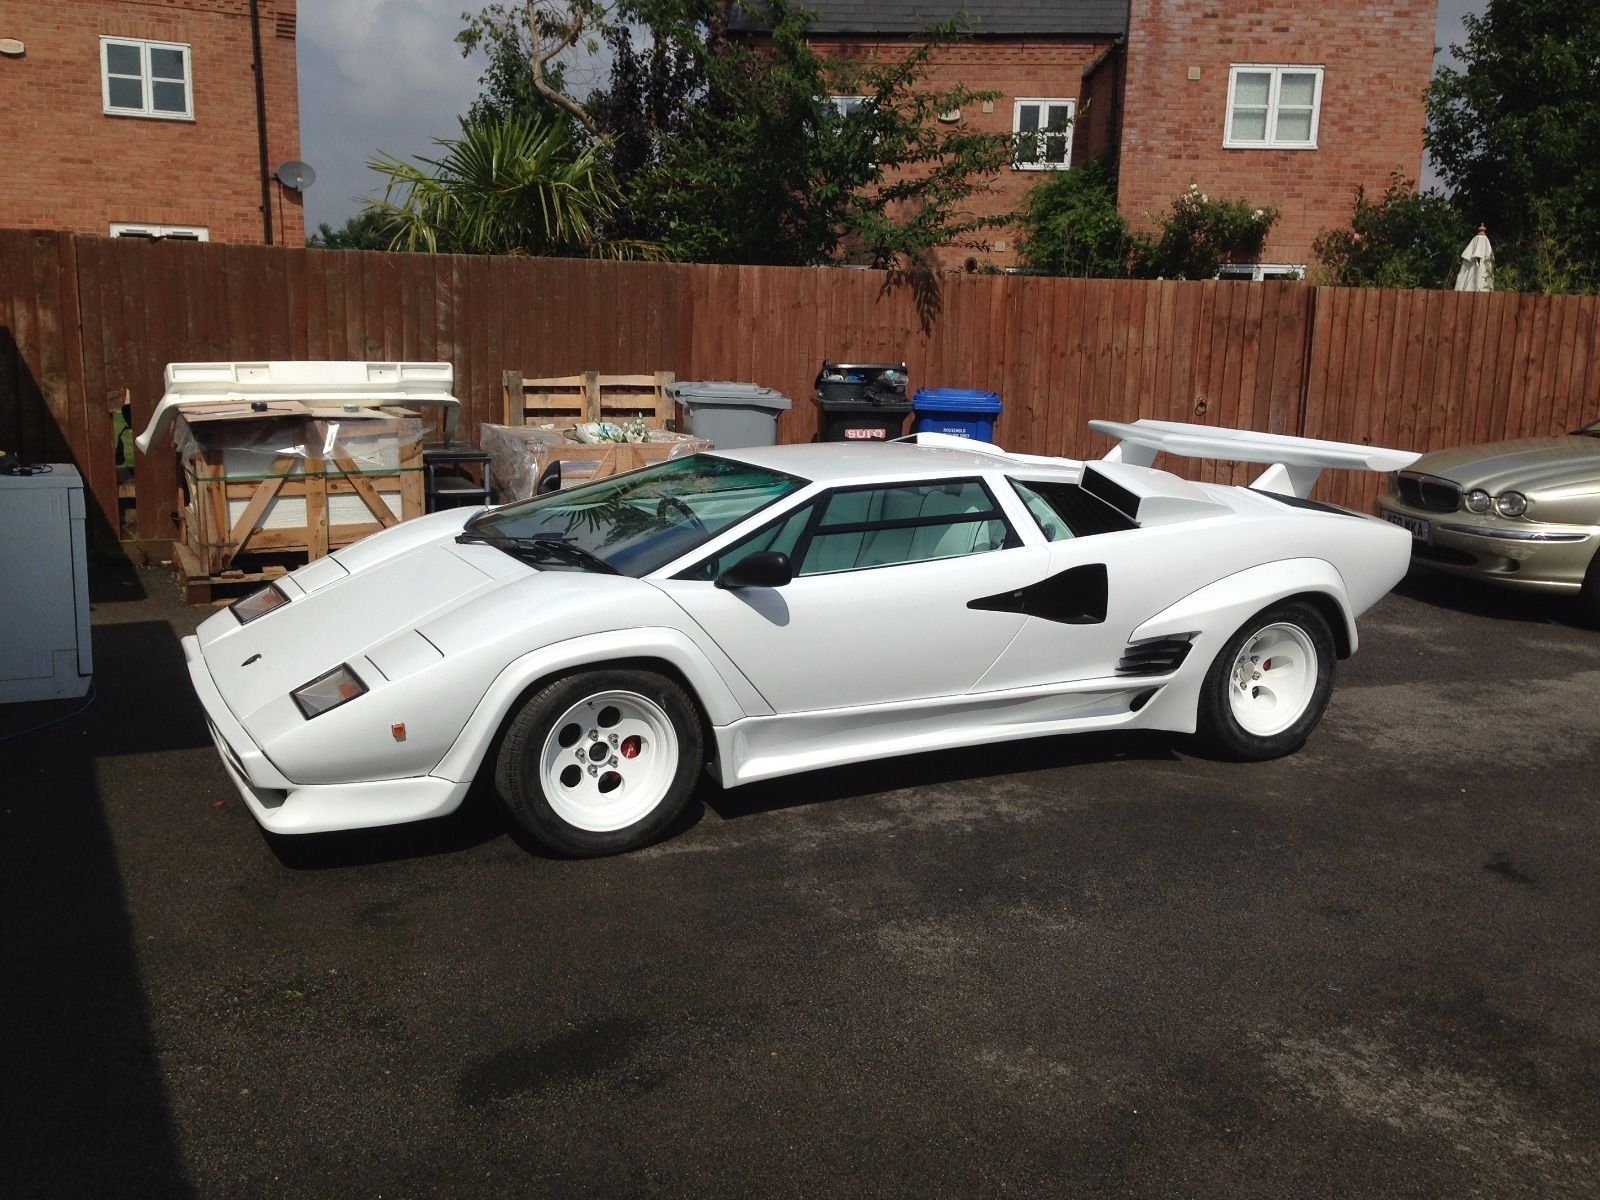 Beautiful Replica Of The Iconic Lamborghini Countach Description From Pistonheads Com I Search Lamborghini Countach Lamborghini Lamborghini Countach For Sale